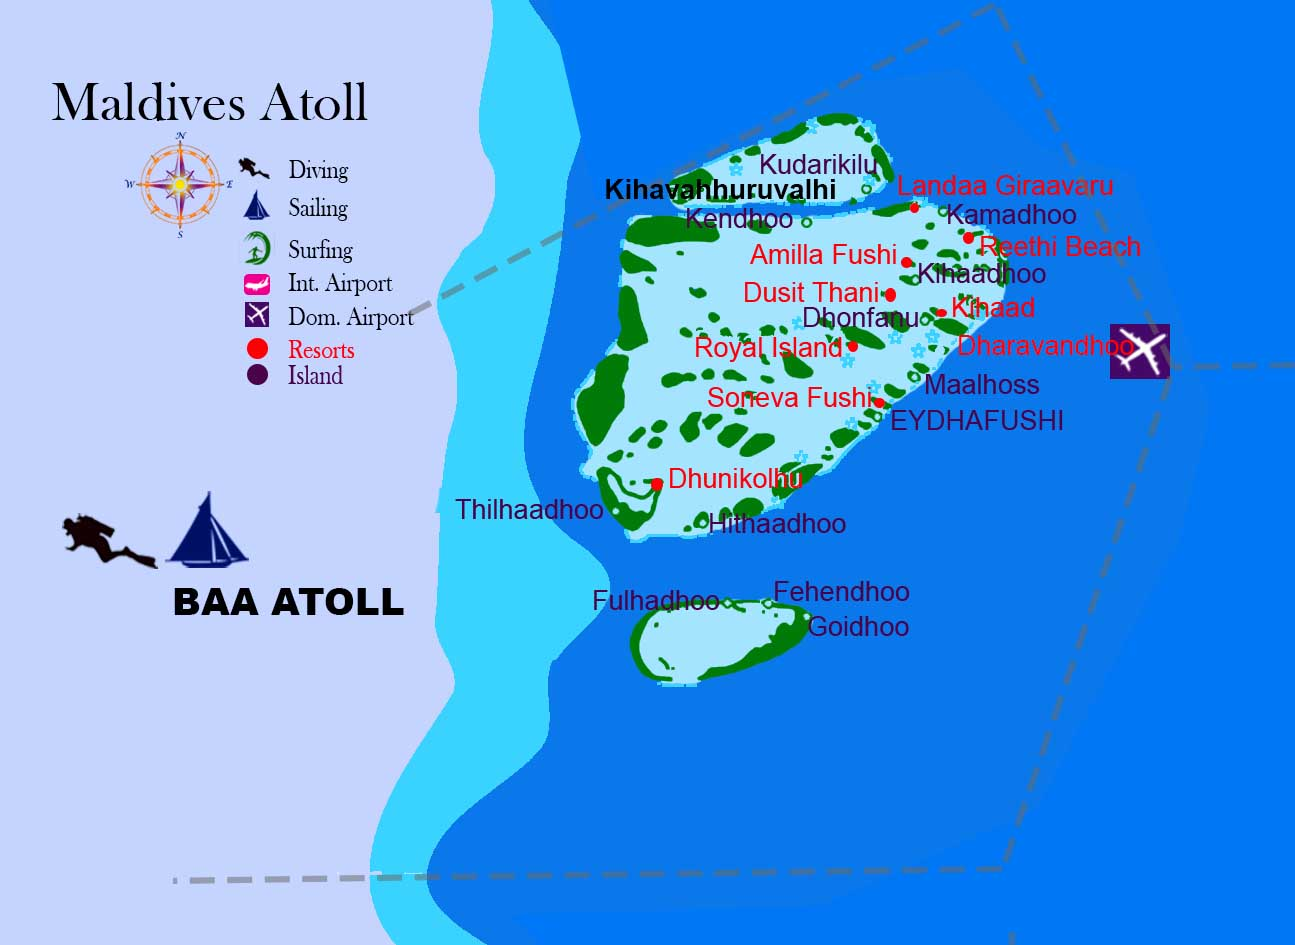 Maldives Map Baa Atoll - Travel Destination and tips on deccan plateau map, mauritius island map, north male atoll map, japan map, india map, far east map, canary islands map, china map, malaysia map, bora bora, indian ocean, mozambique map, bora bora map, bahrain map, caribbean map, tajikistan map, united kingdom map, brunei map, diego garcia map, sri lanka, indian ocean map, mongolia map, portugal map,